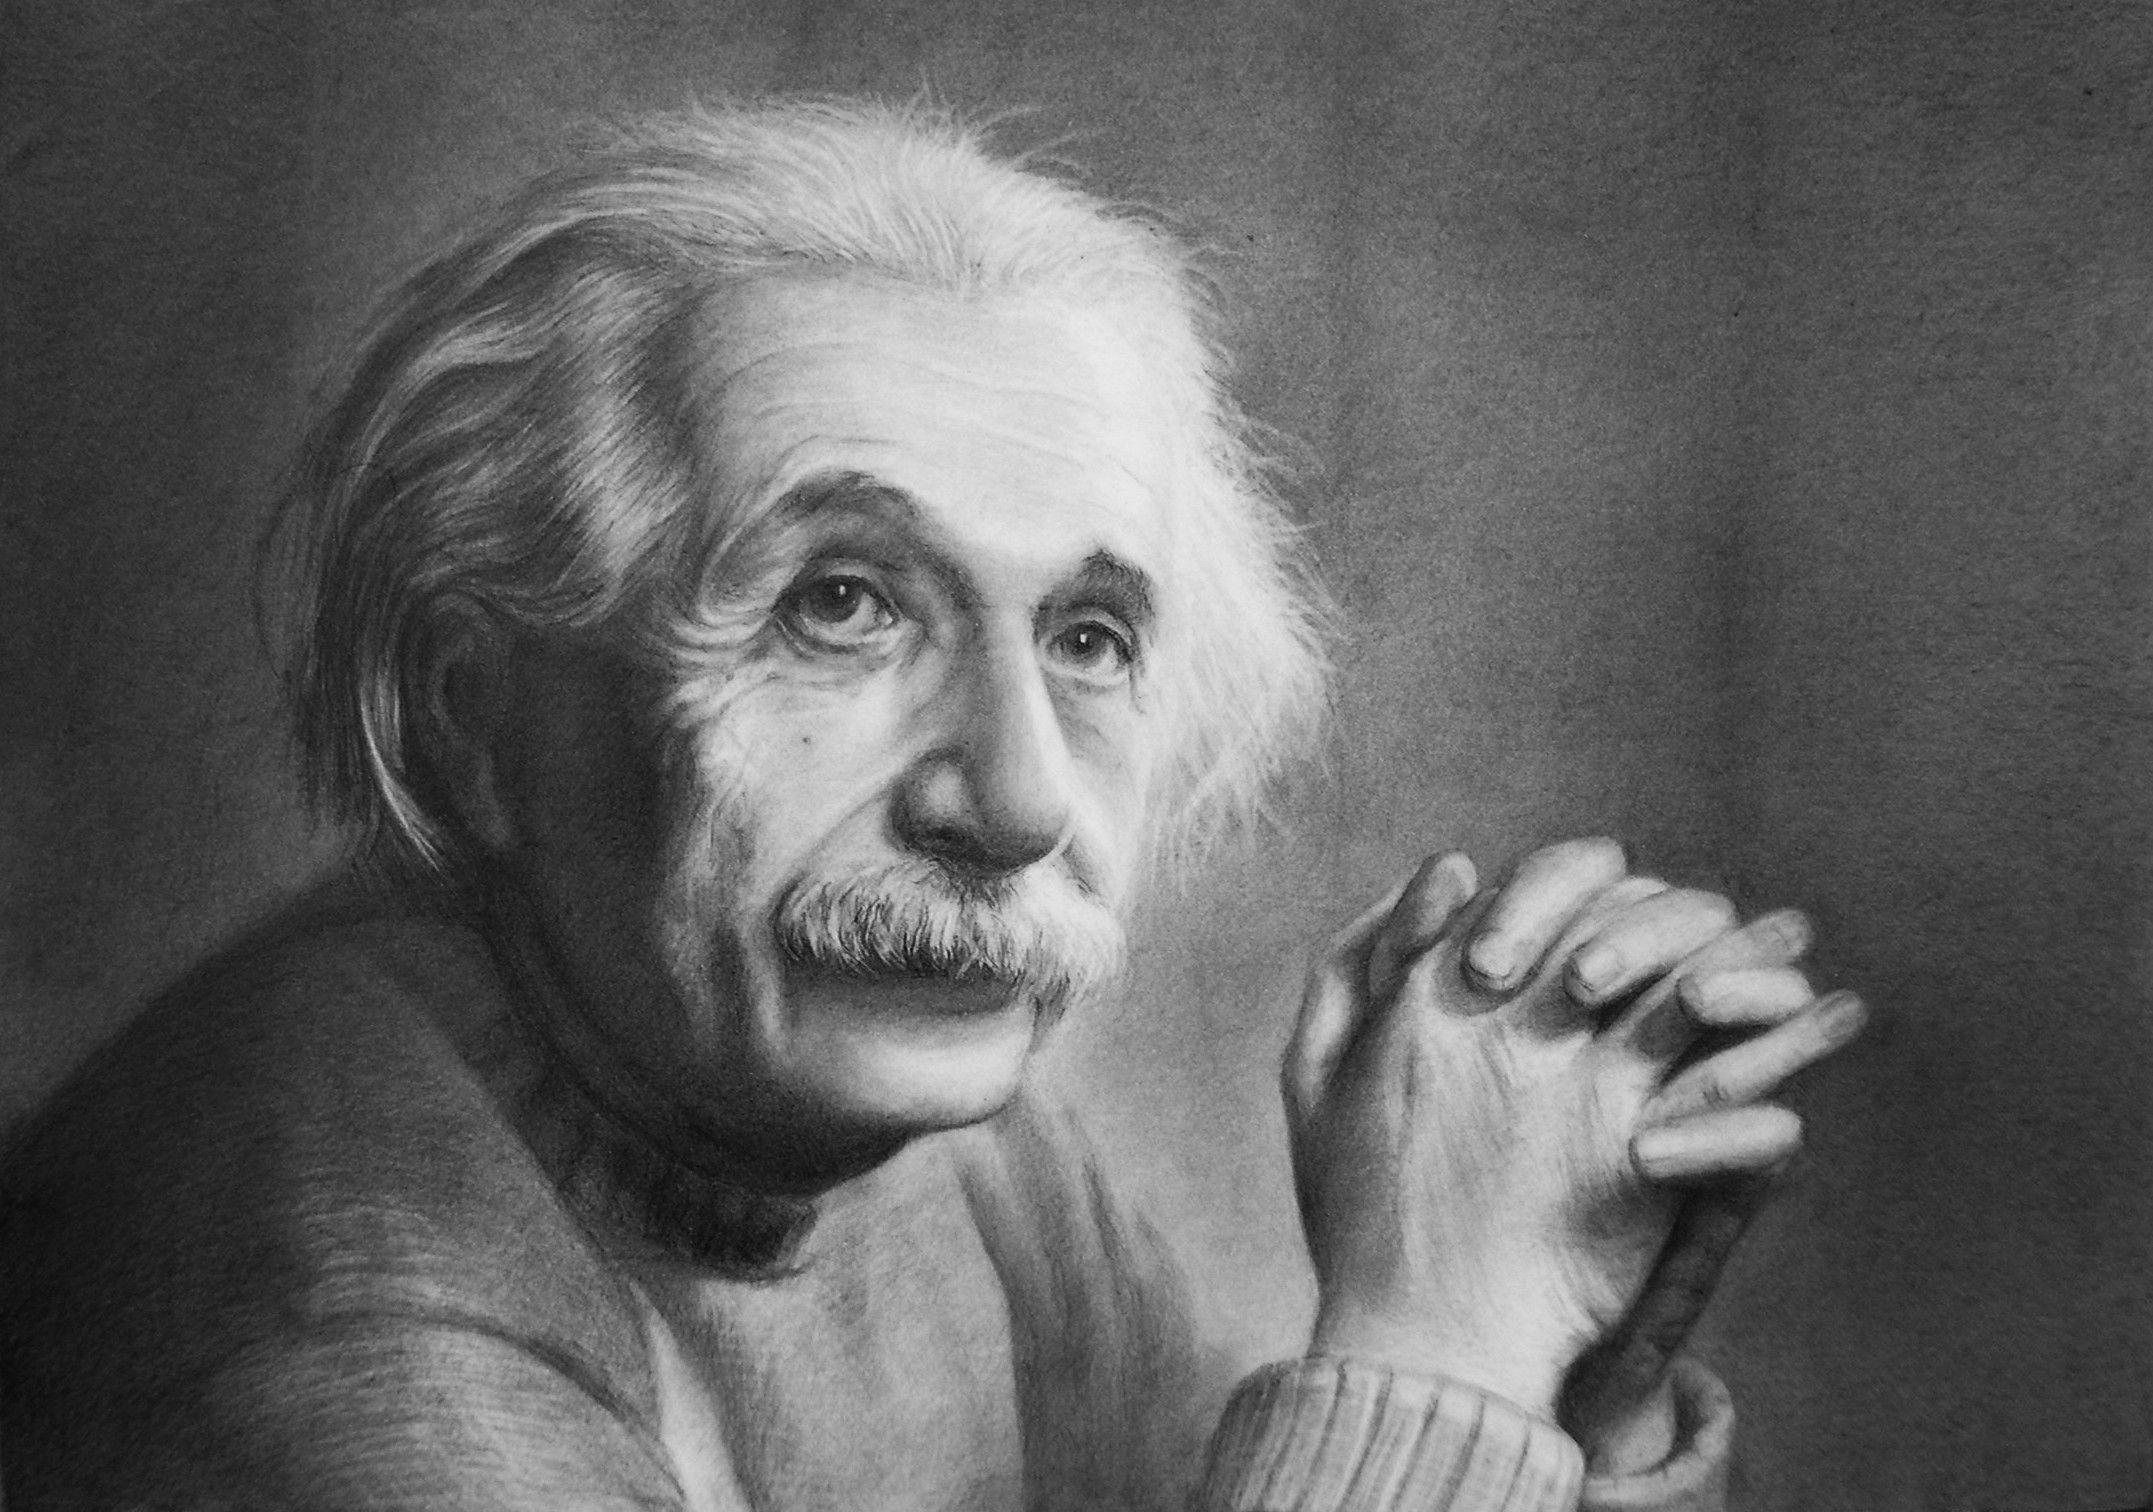 Albert Einstein Wallpapers Hd 22525 Images